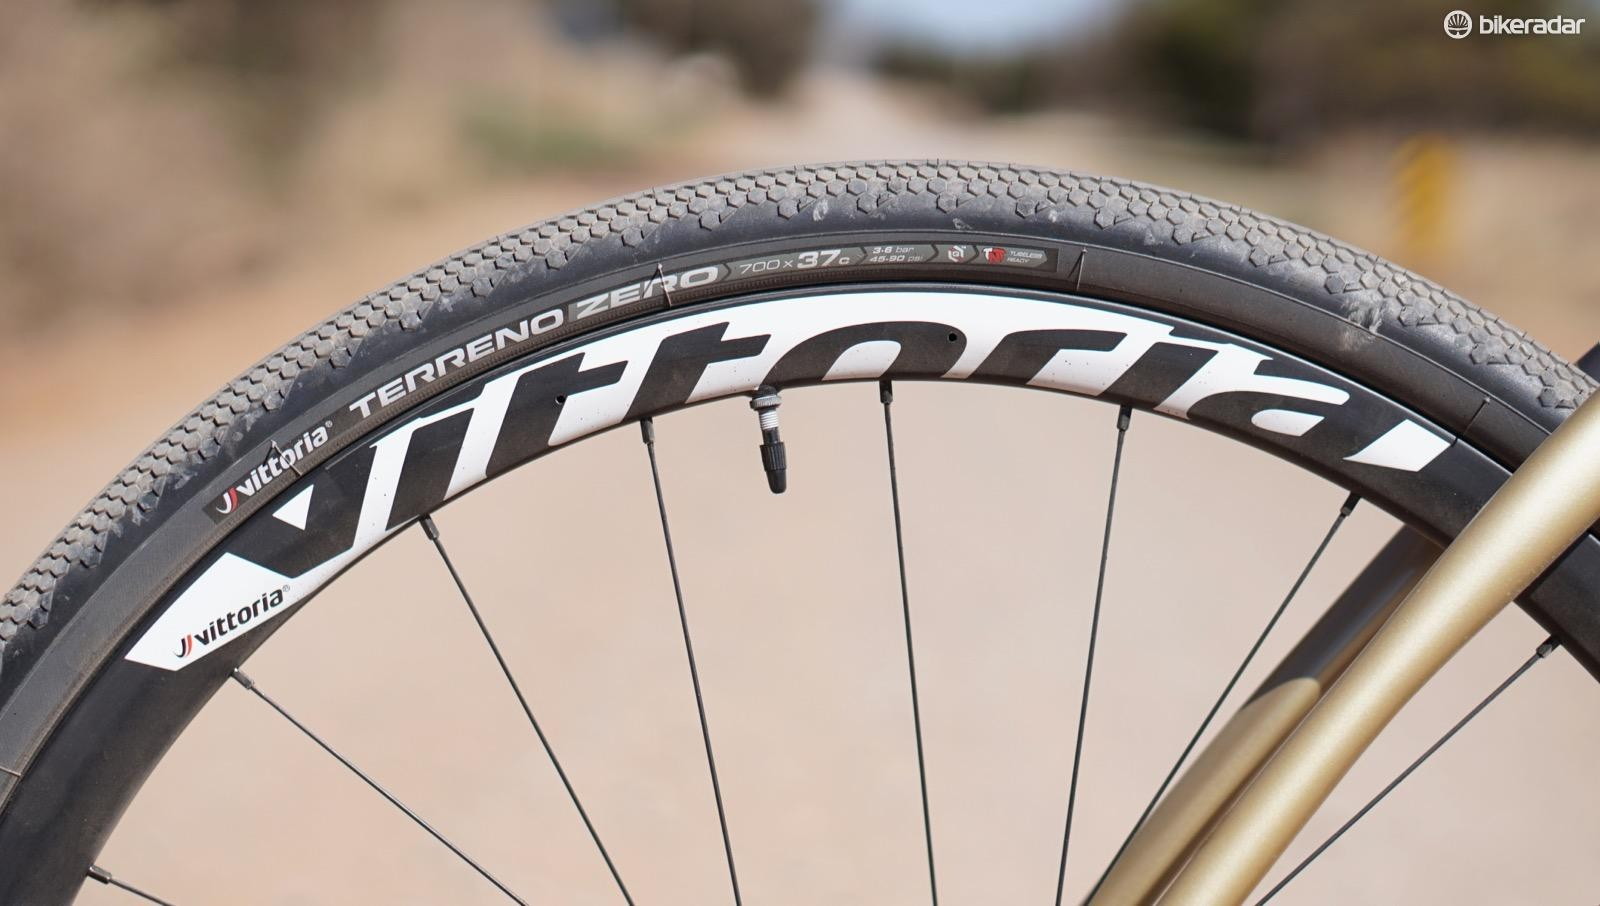 Josh and Ben both raced Vittoria's upcoming carbon wheels